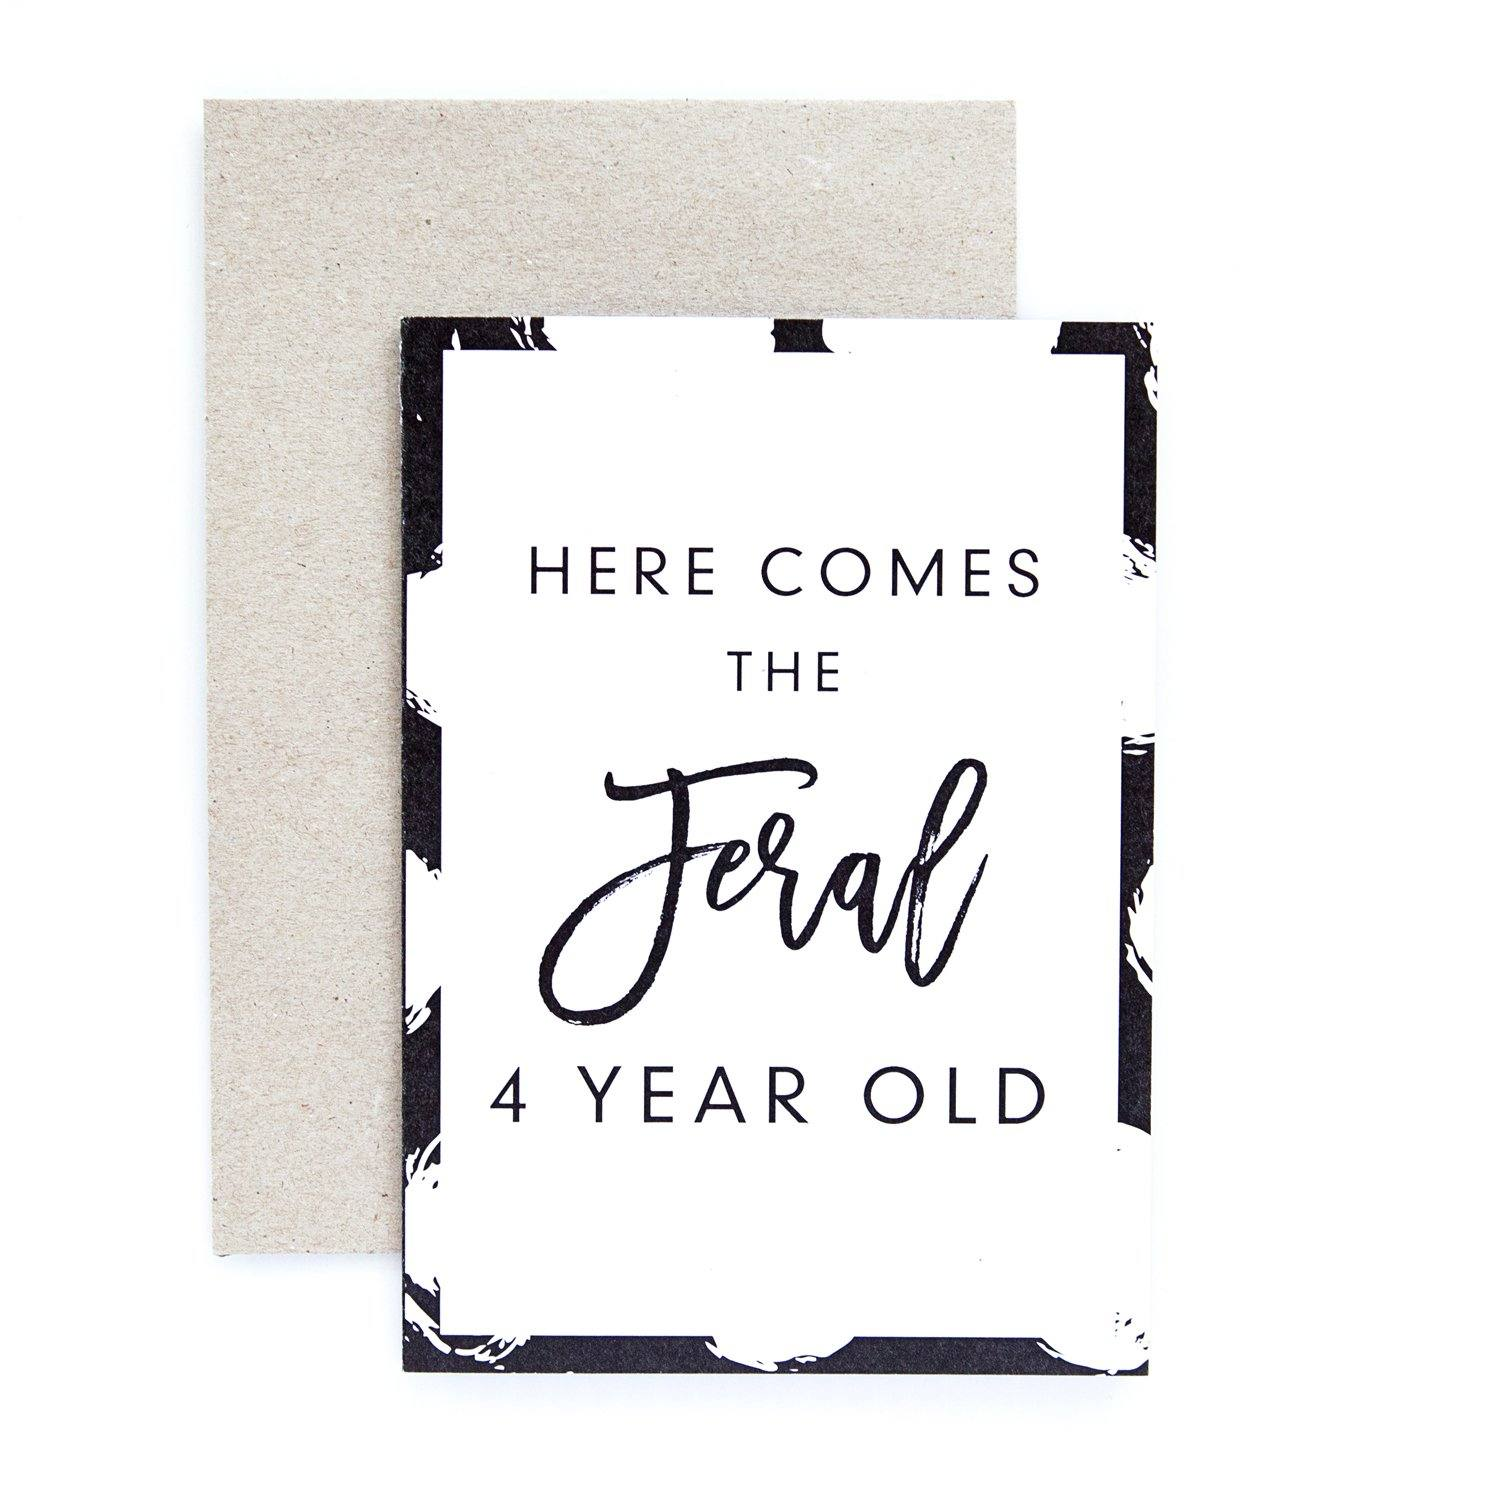 Feral 4 Year Old Greeting Card